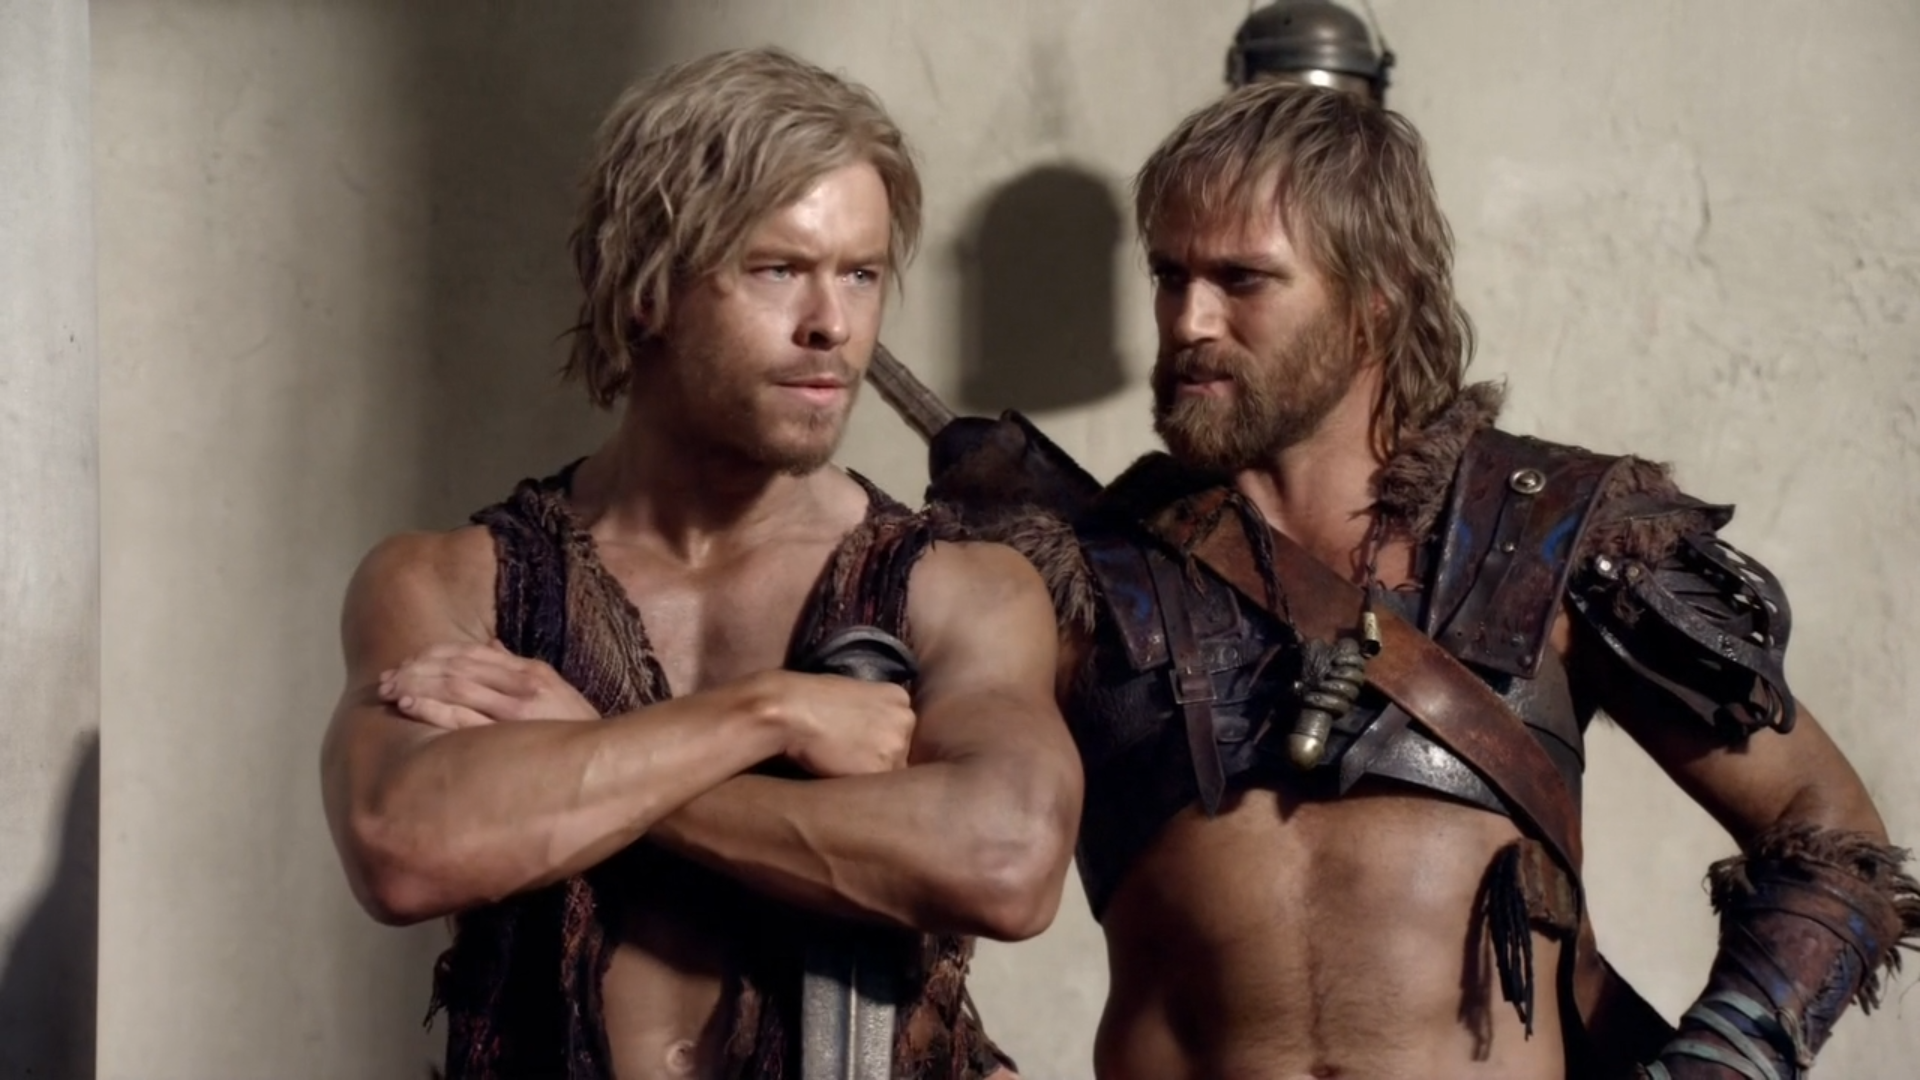 Syfy acquires the rights to starz spartacus action flick chick